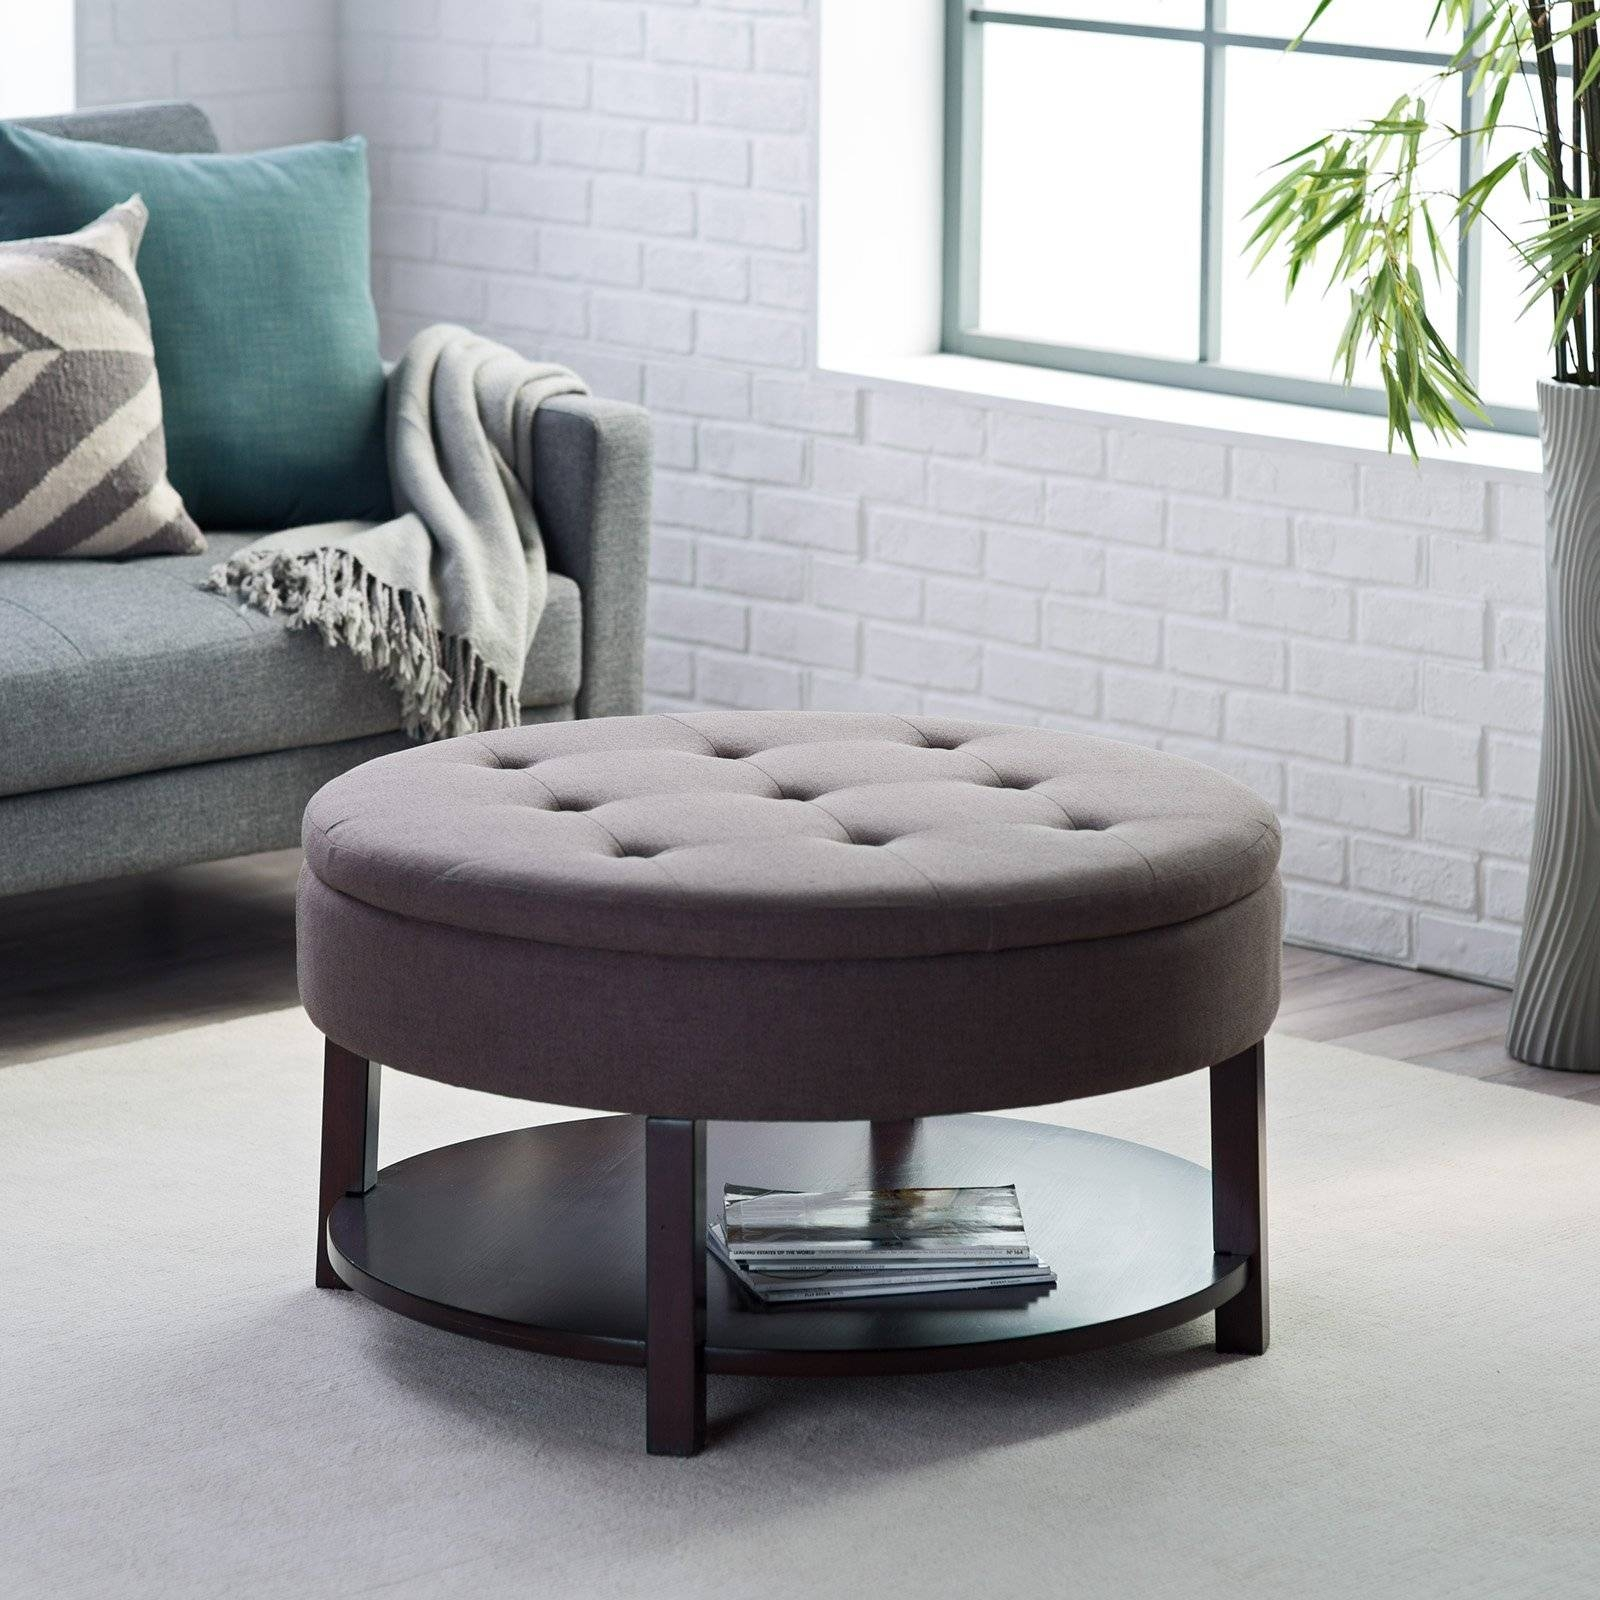 Ottoman Coffee Table Round | Roselawnlutheran for Footstool Coffee Tables (Image 20 of 30)